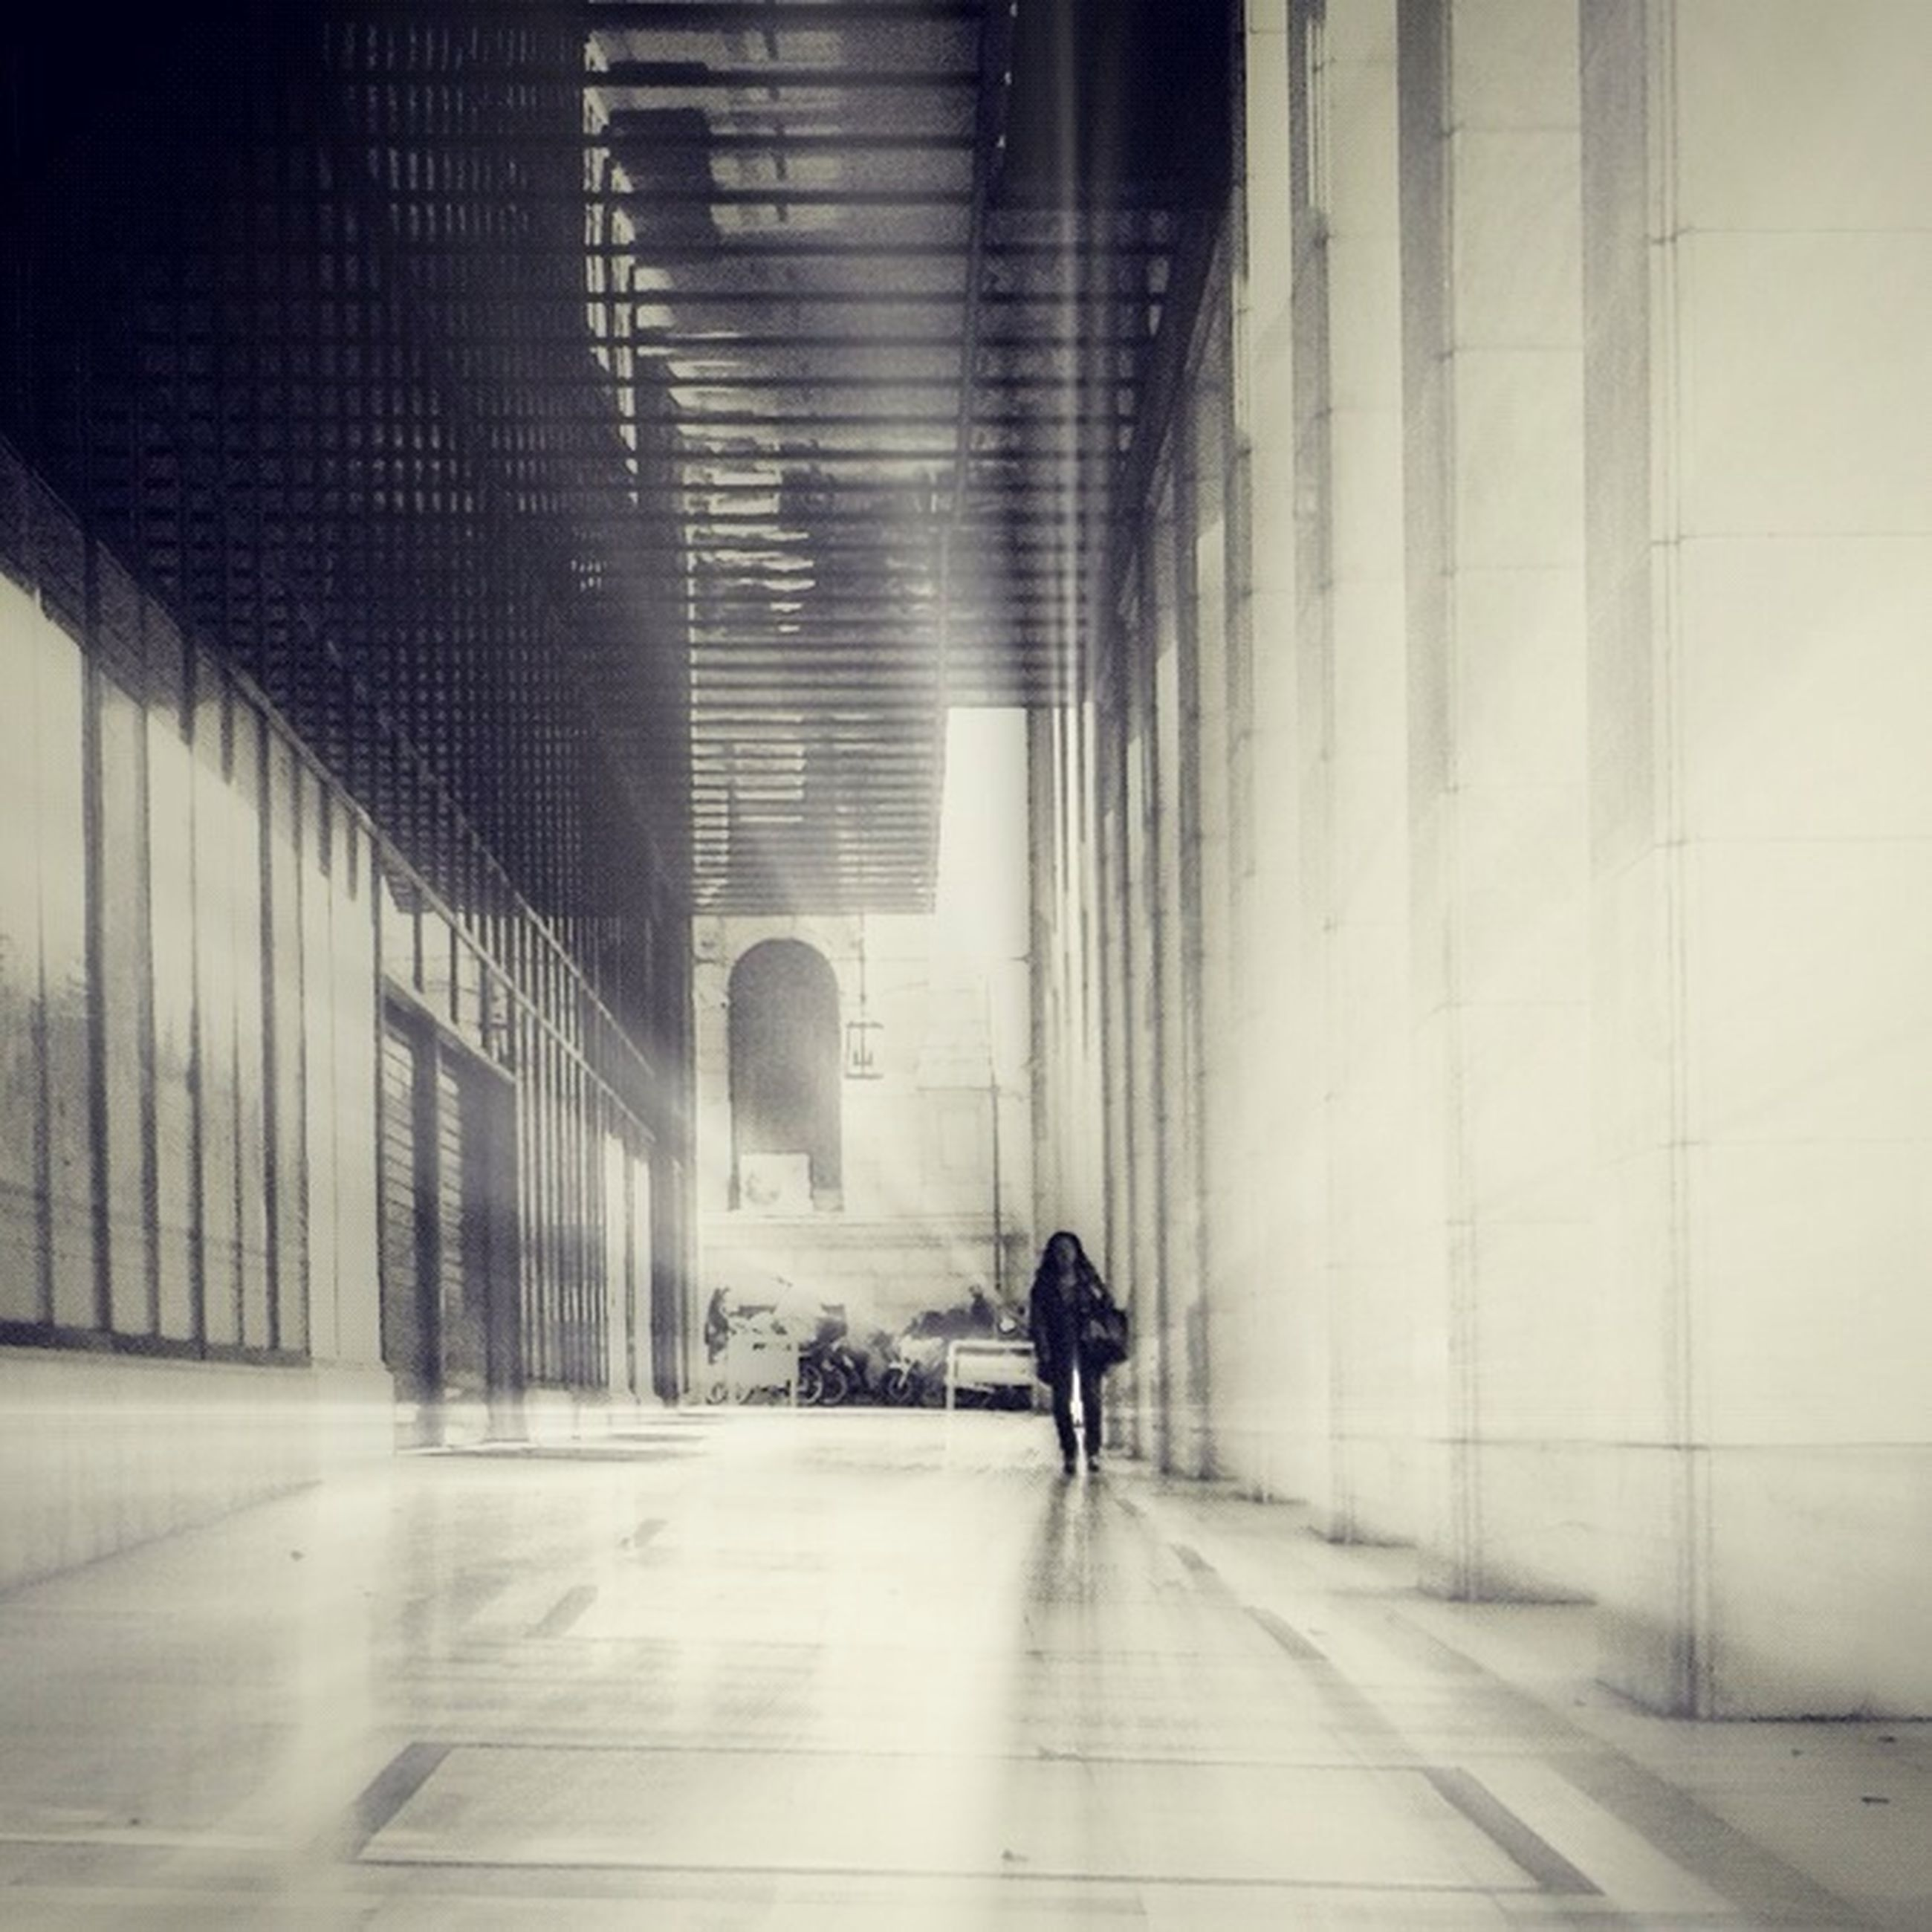 indoors, walking, full length, architecture, built structure, corridor, rear view, the way forward, men, lifestyles, tunnel, person, building, wall - building feature, wall, tiled floor, flooring, diminishing perspective